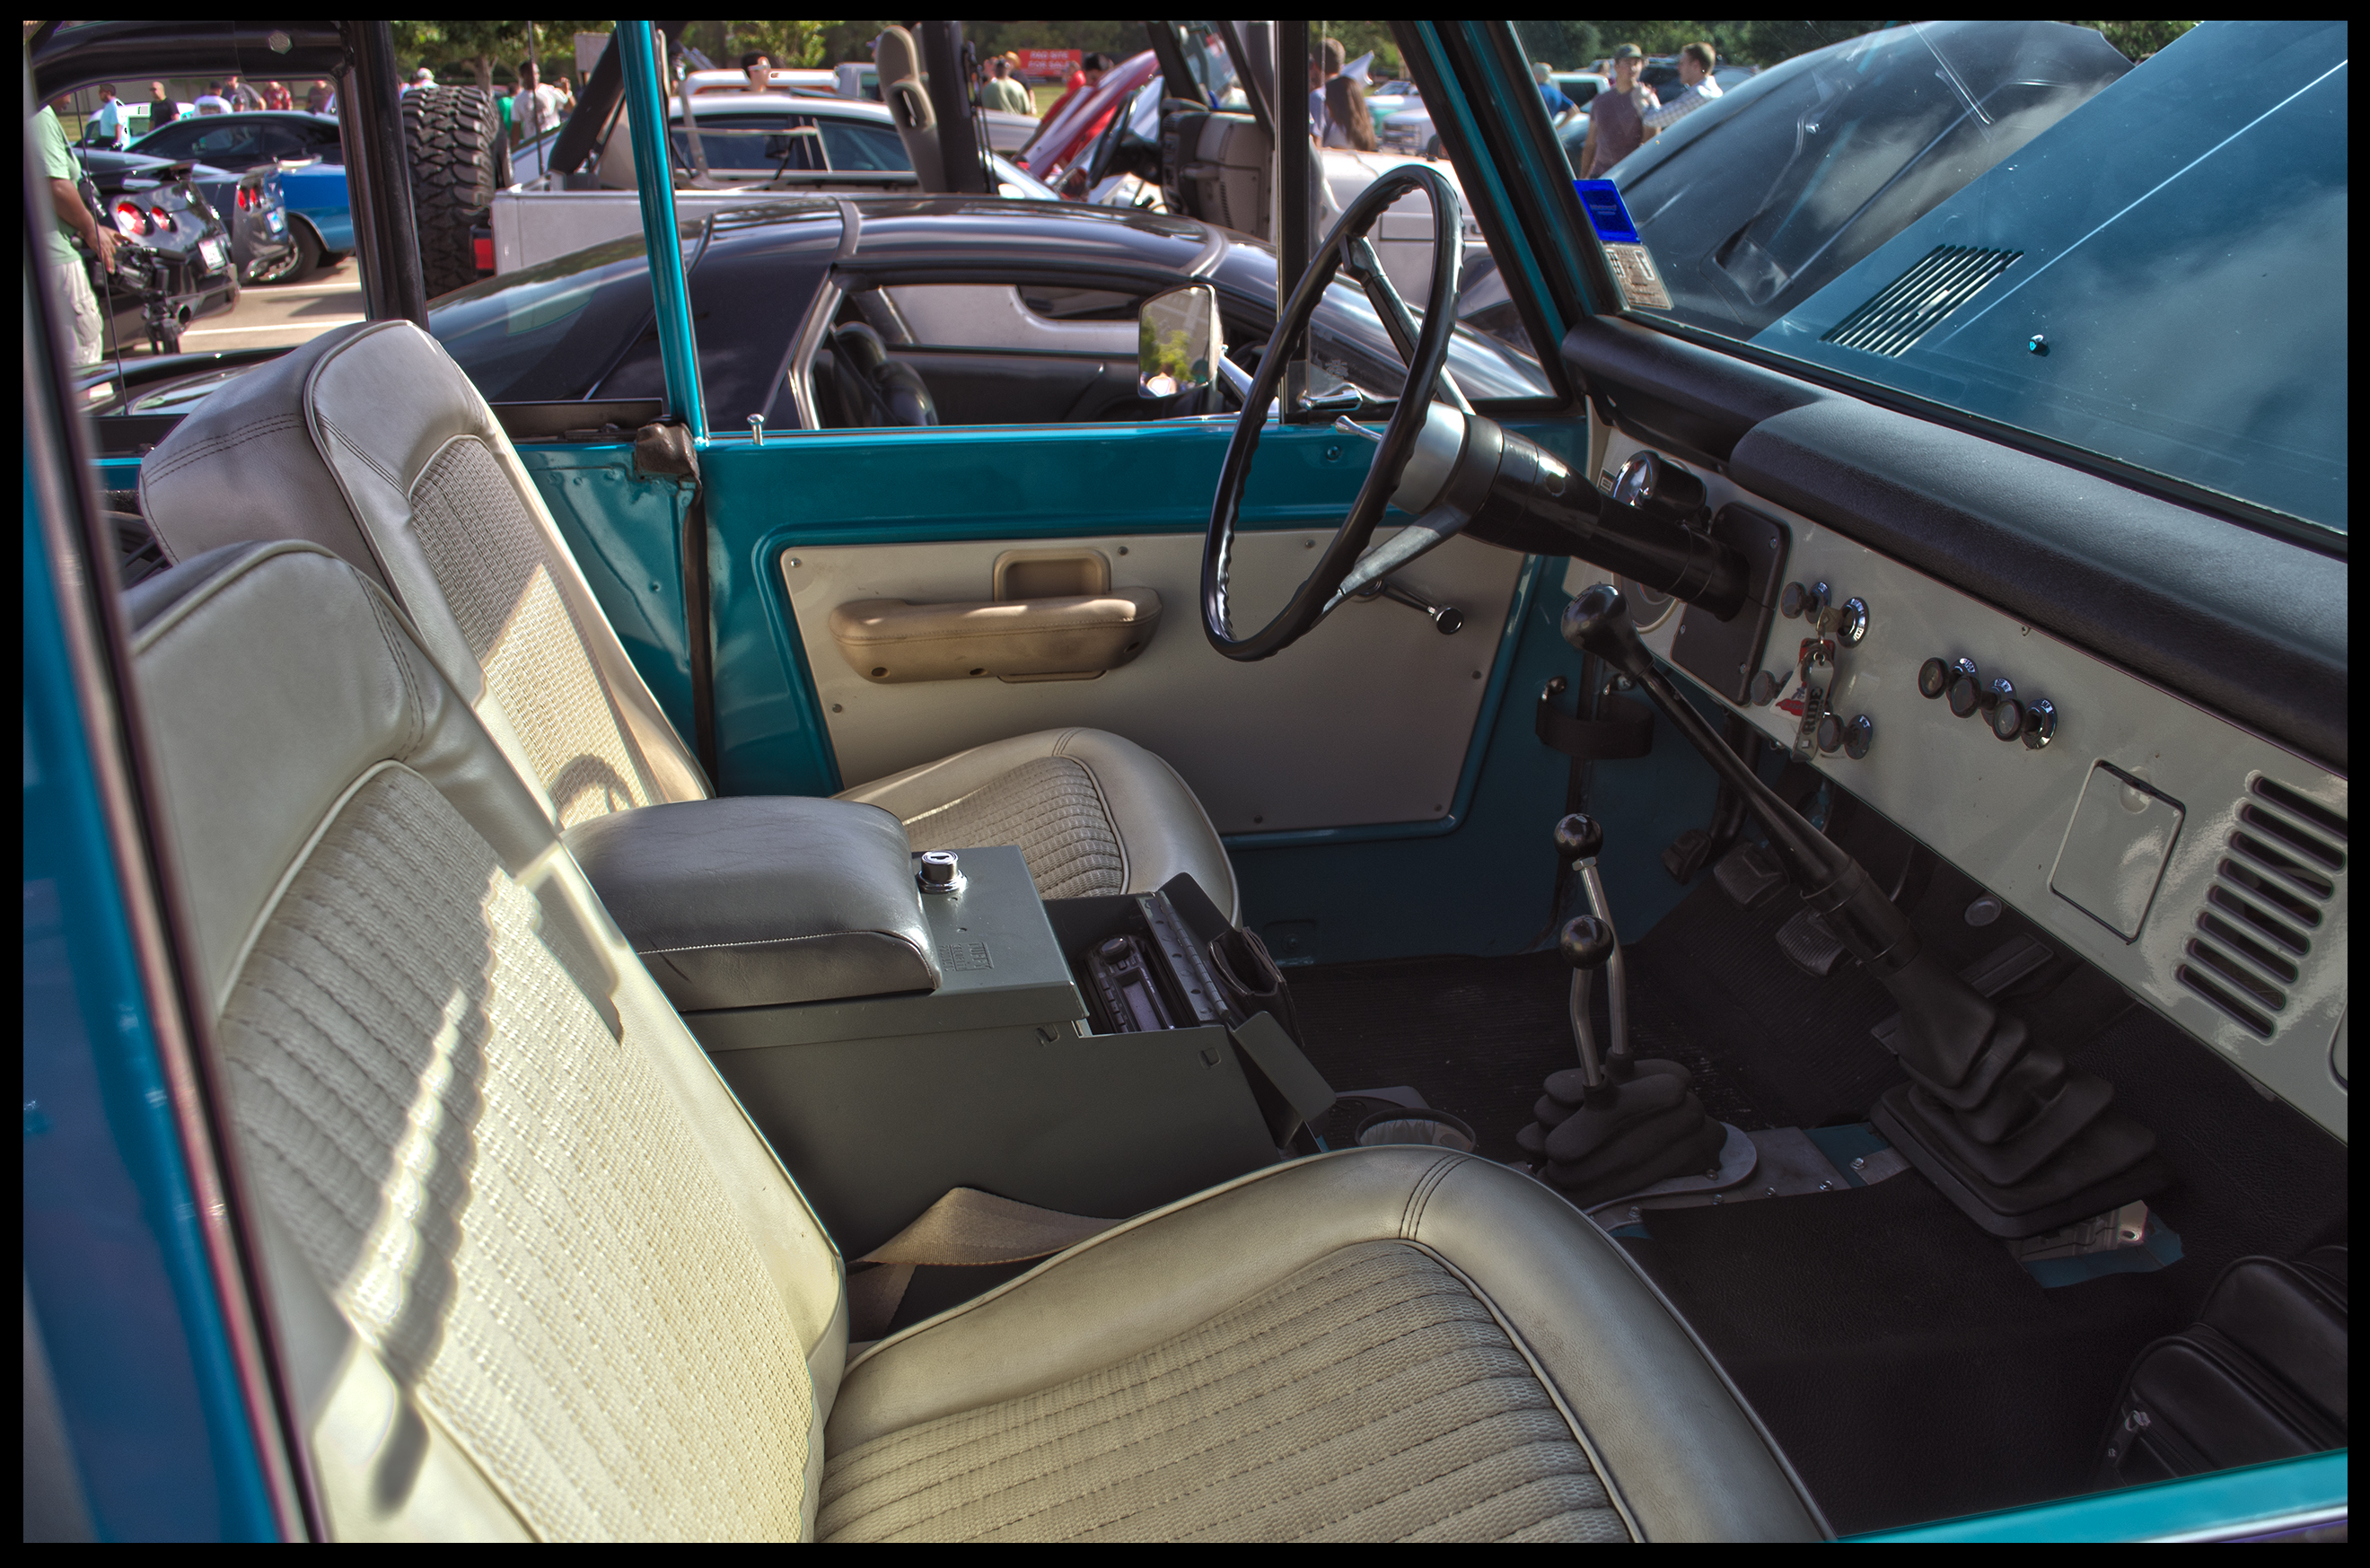 FileFord Bronco Interior